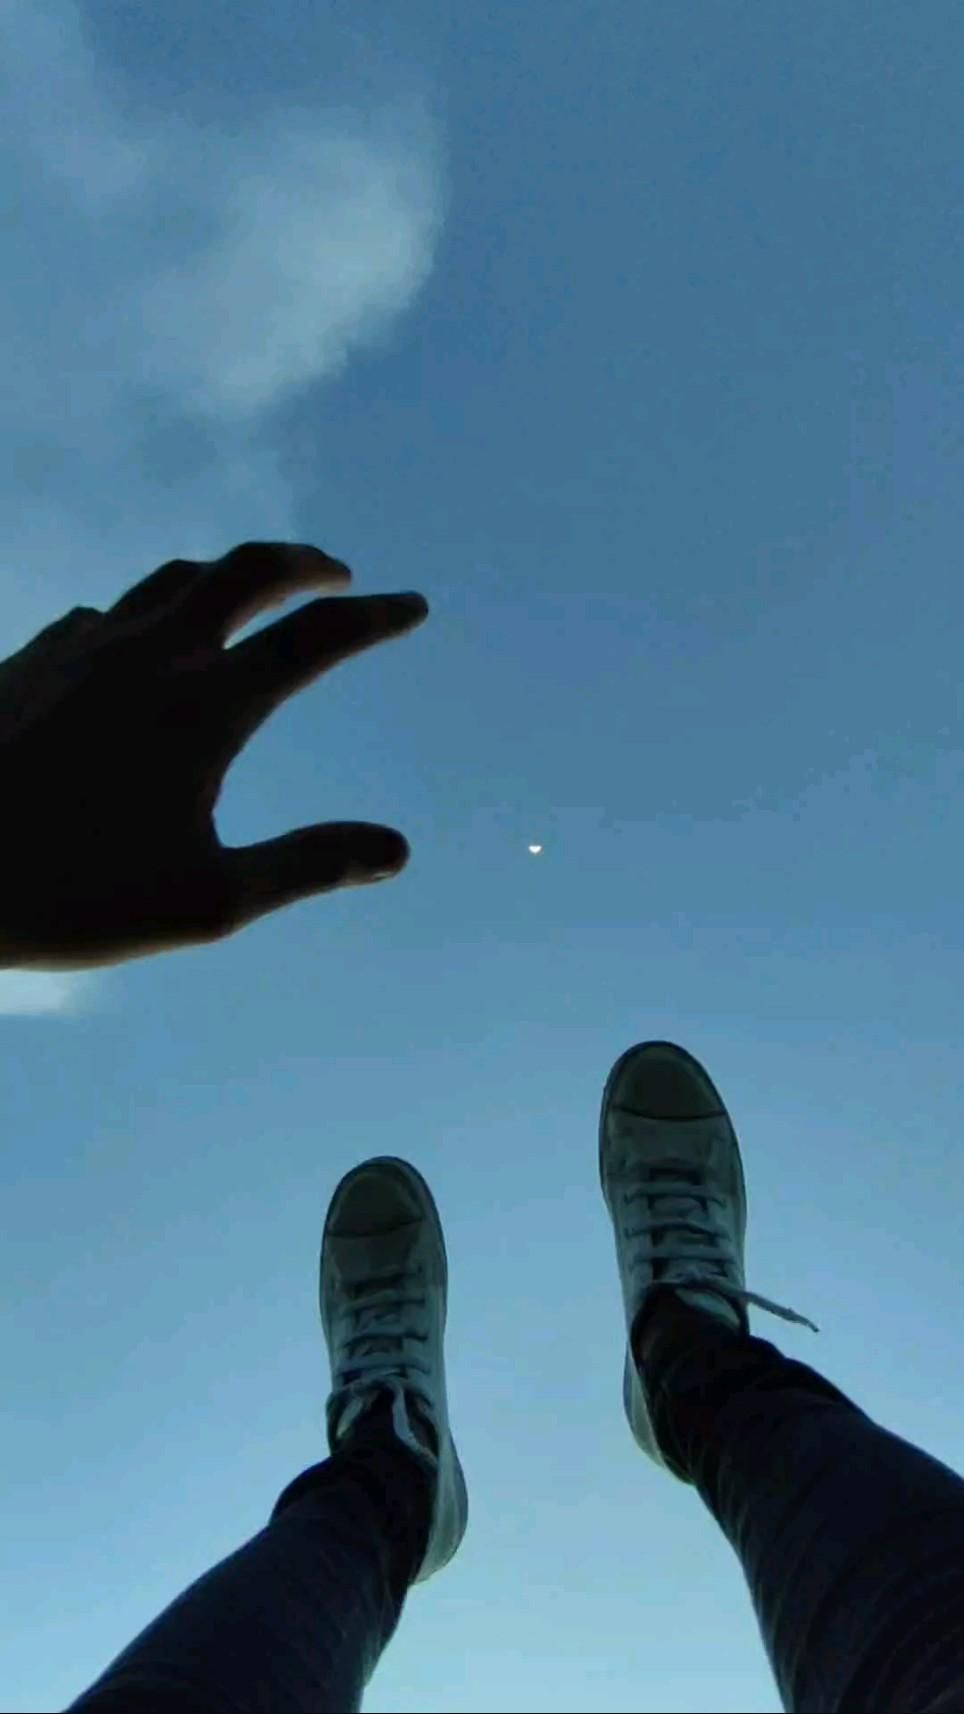 Talking to the moon